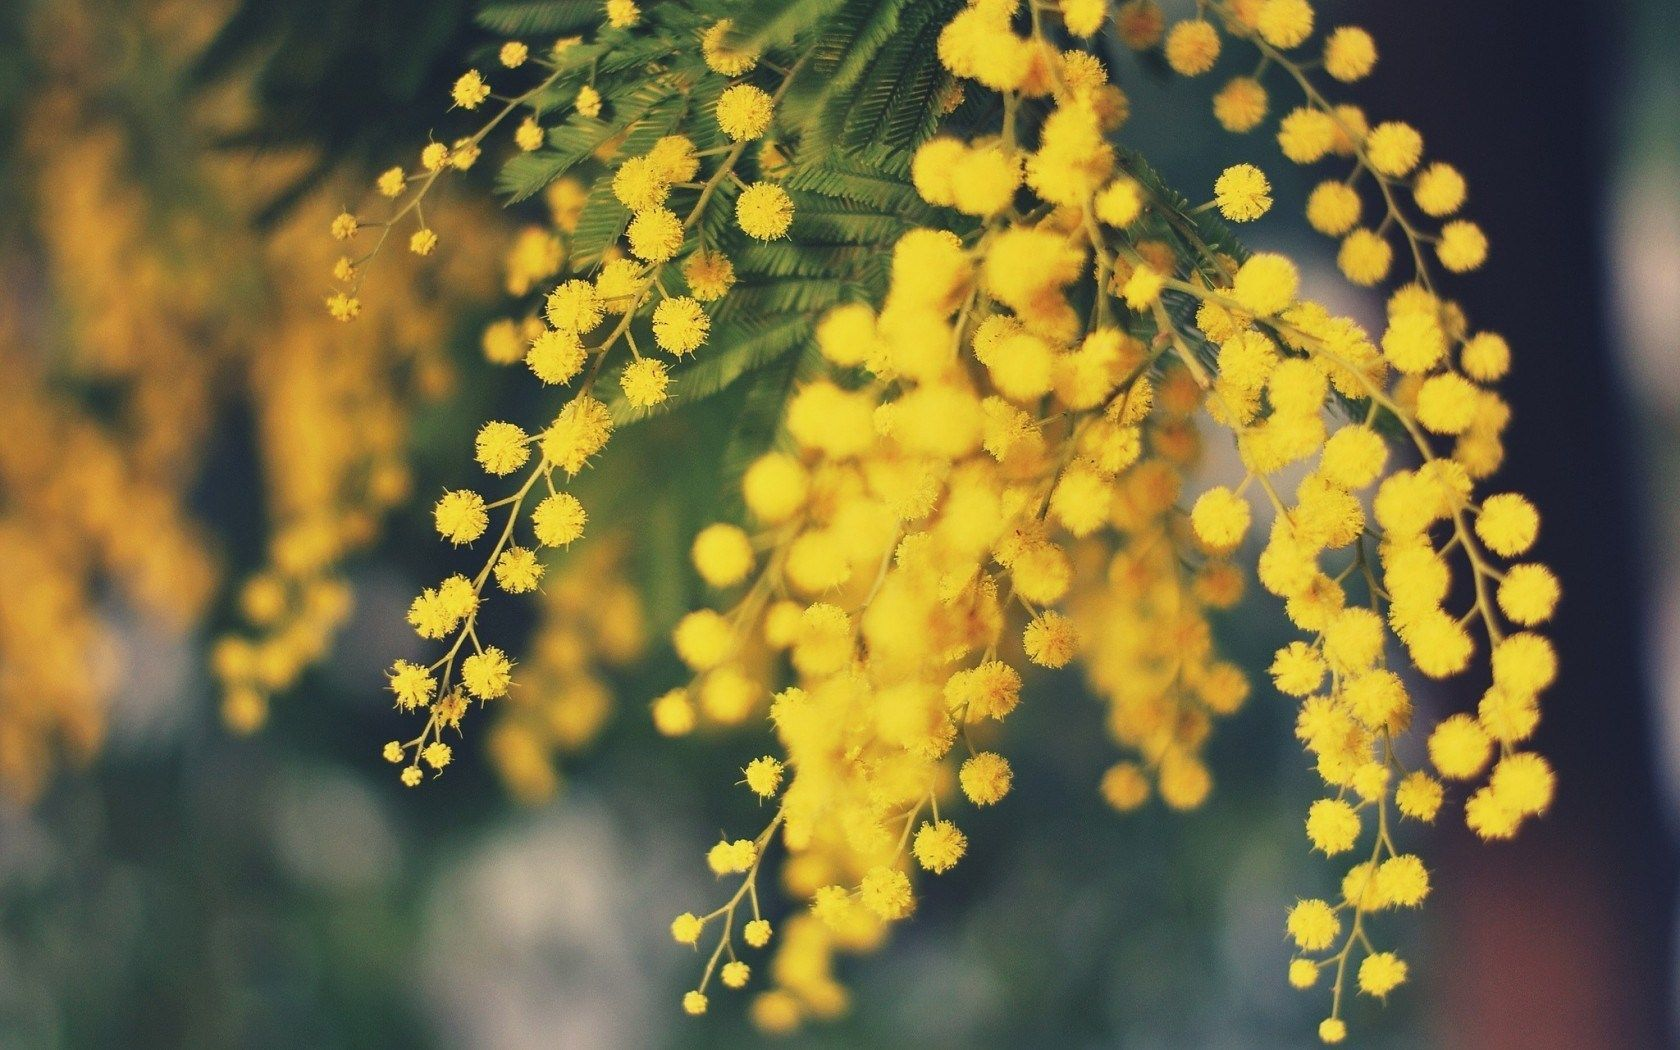 Mimosa Flowers Yellow Nature Hd Wallpaper Freehdwall Free Hd